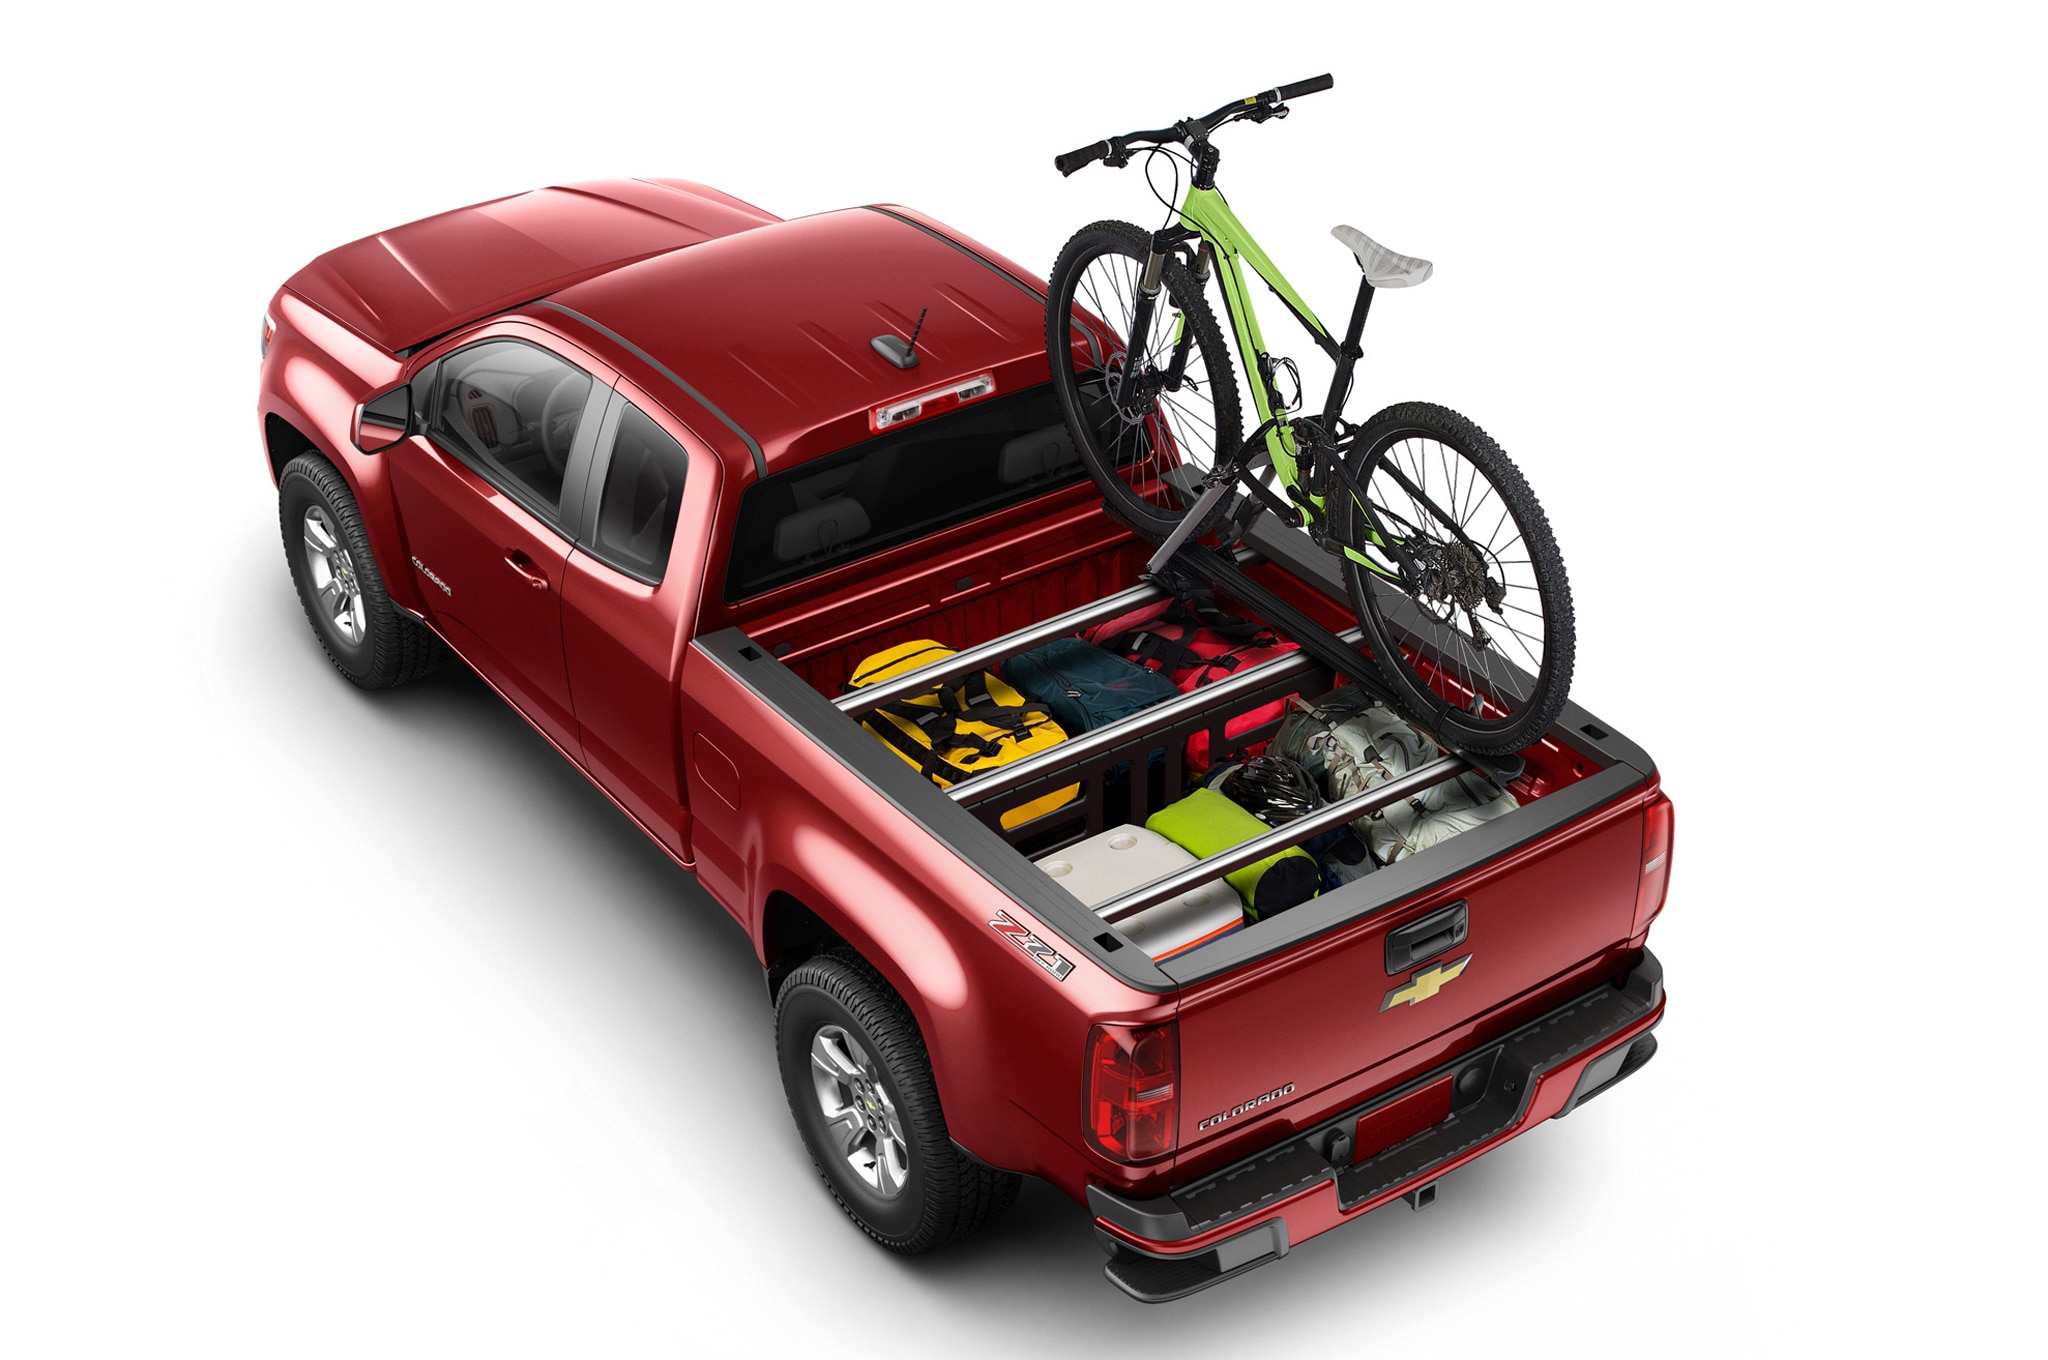 2015 Chevrolet Colorado Z71 rear rack